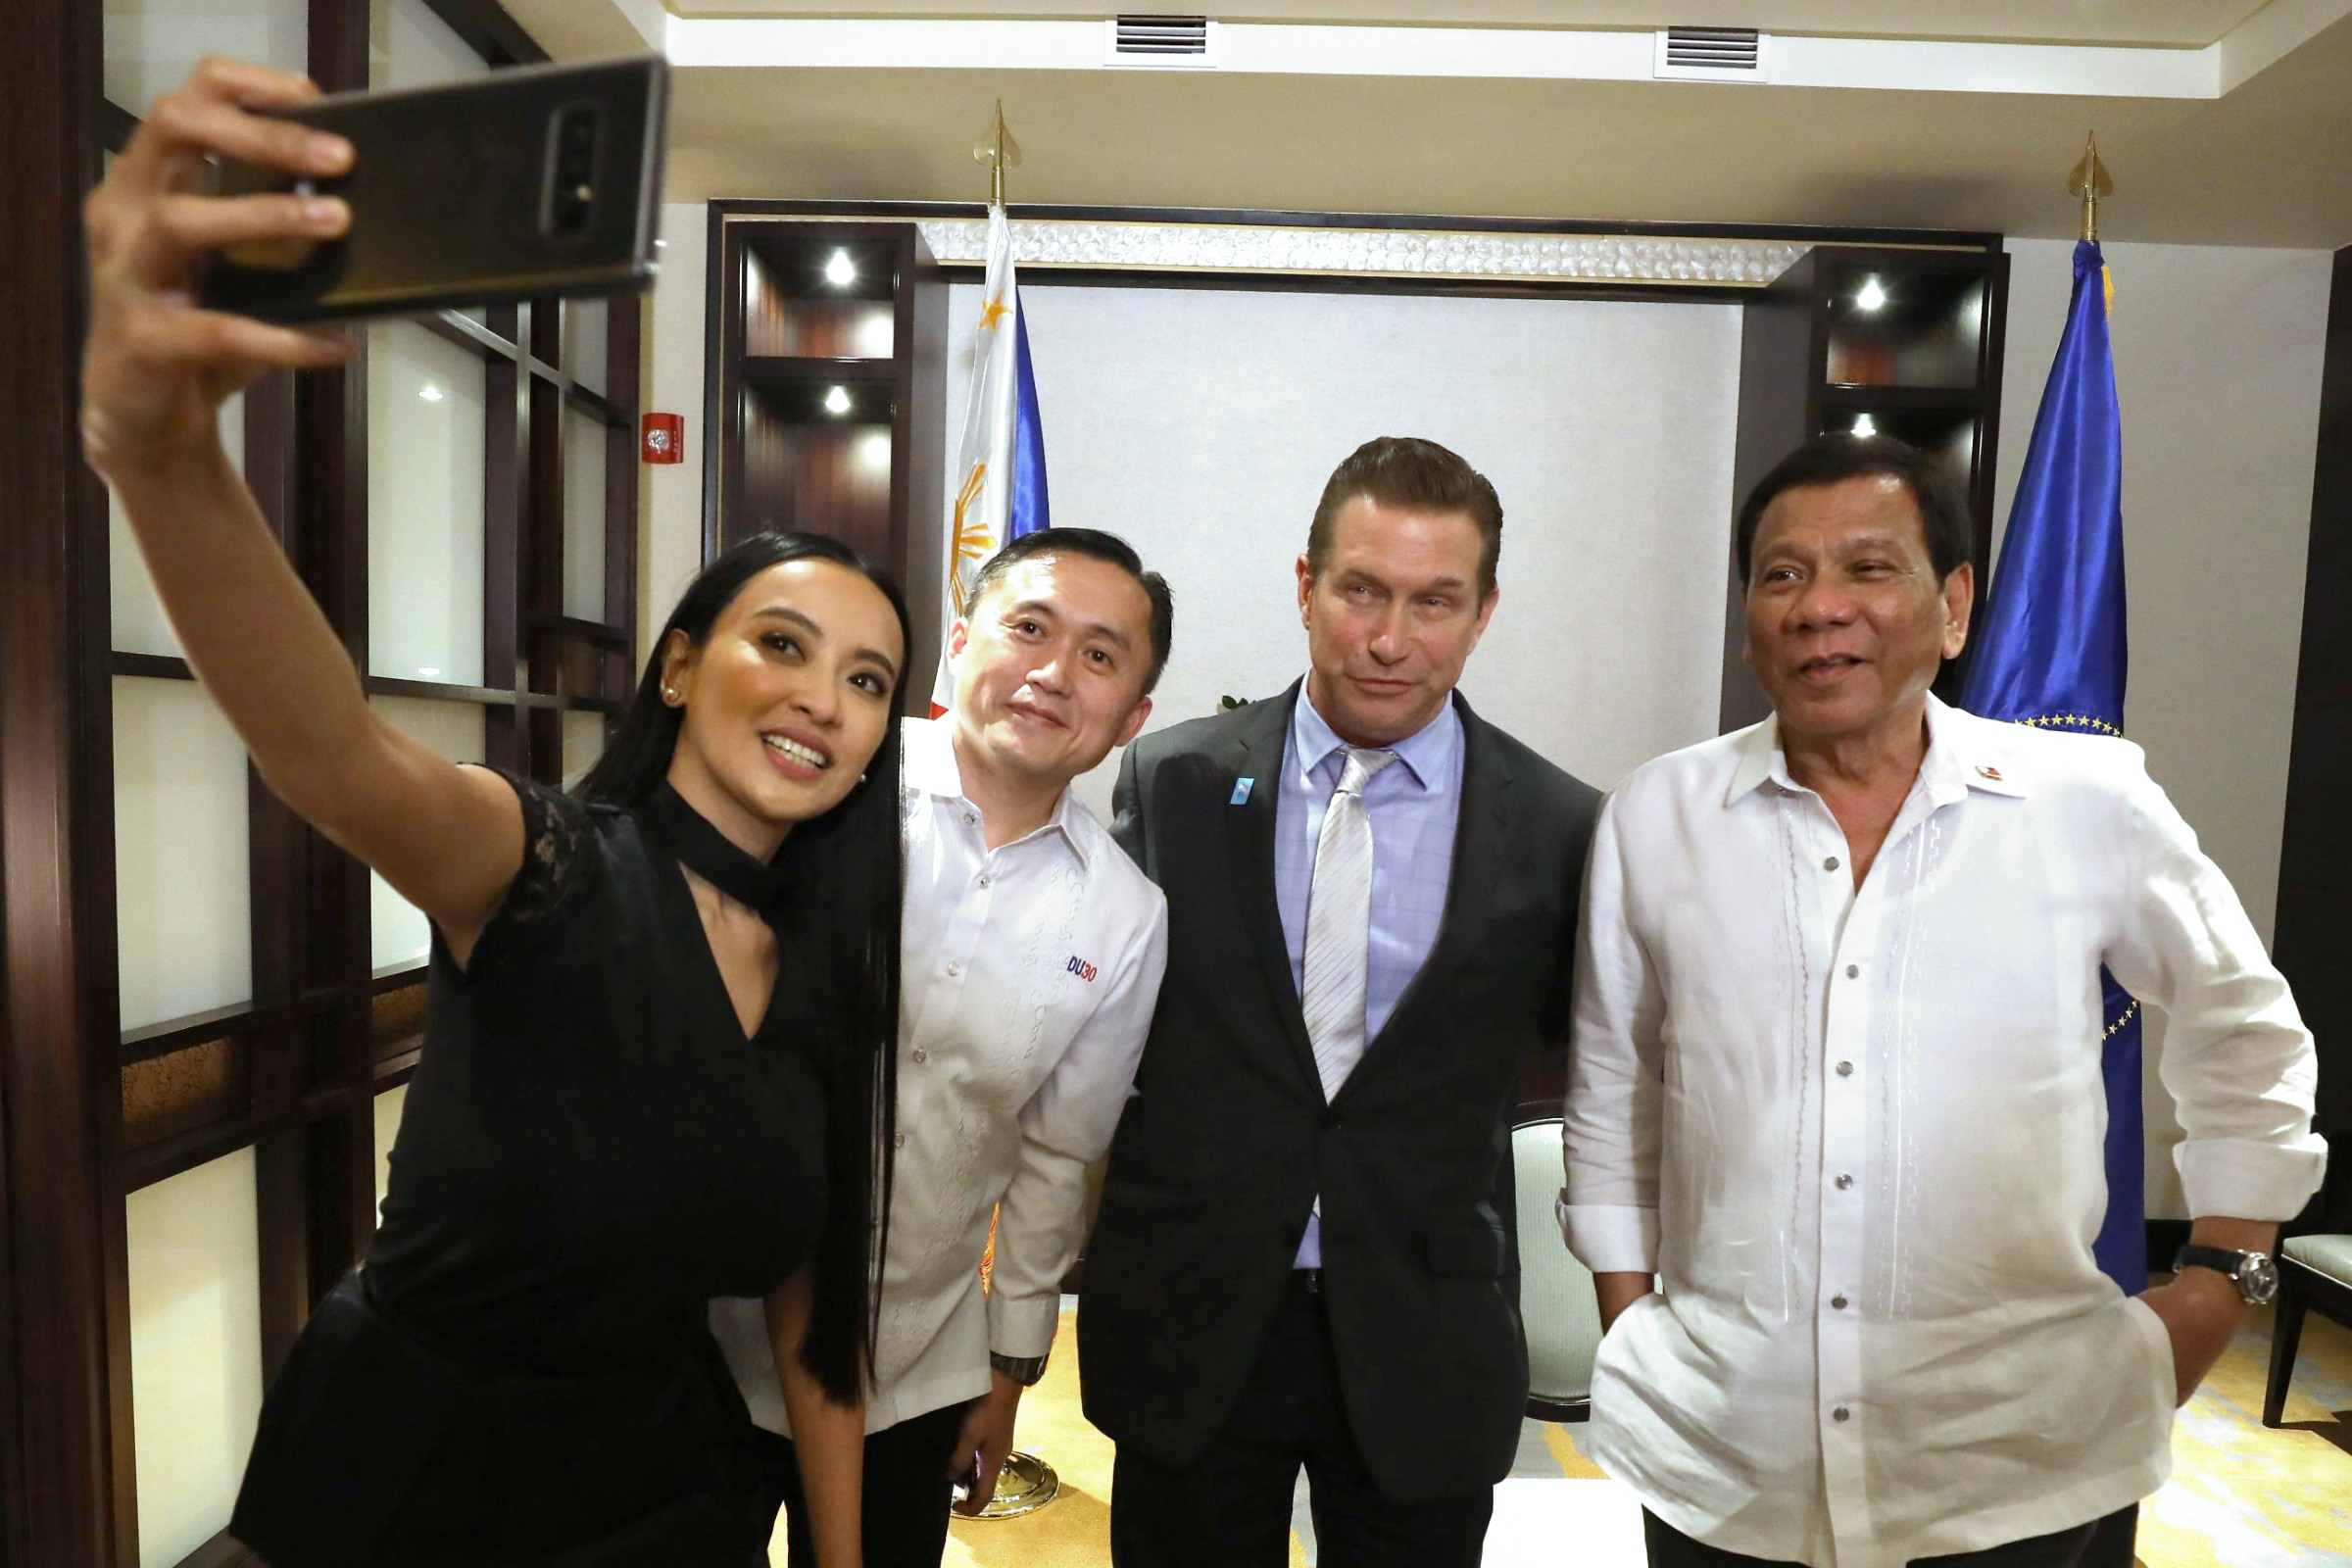 GOVERNMENT AND SHOWBIZ. President Rodrigo Duterte poses for a photo with Hollywood actor Stephen Baldwin, Special Assistant to the President Bong Go, and PCOO Assistant Secretary Mocha Uson. Malacau00f1ang photo